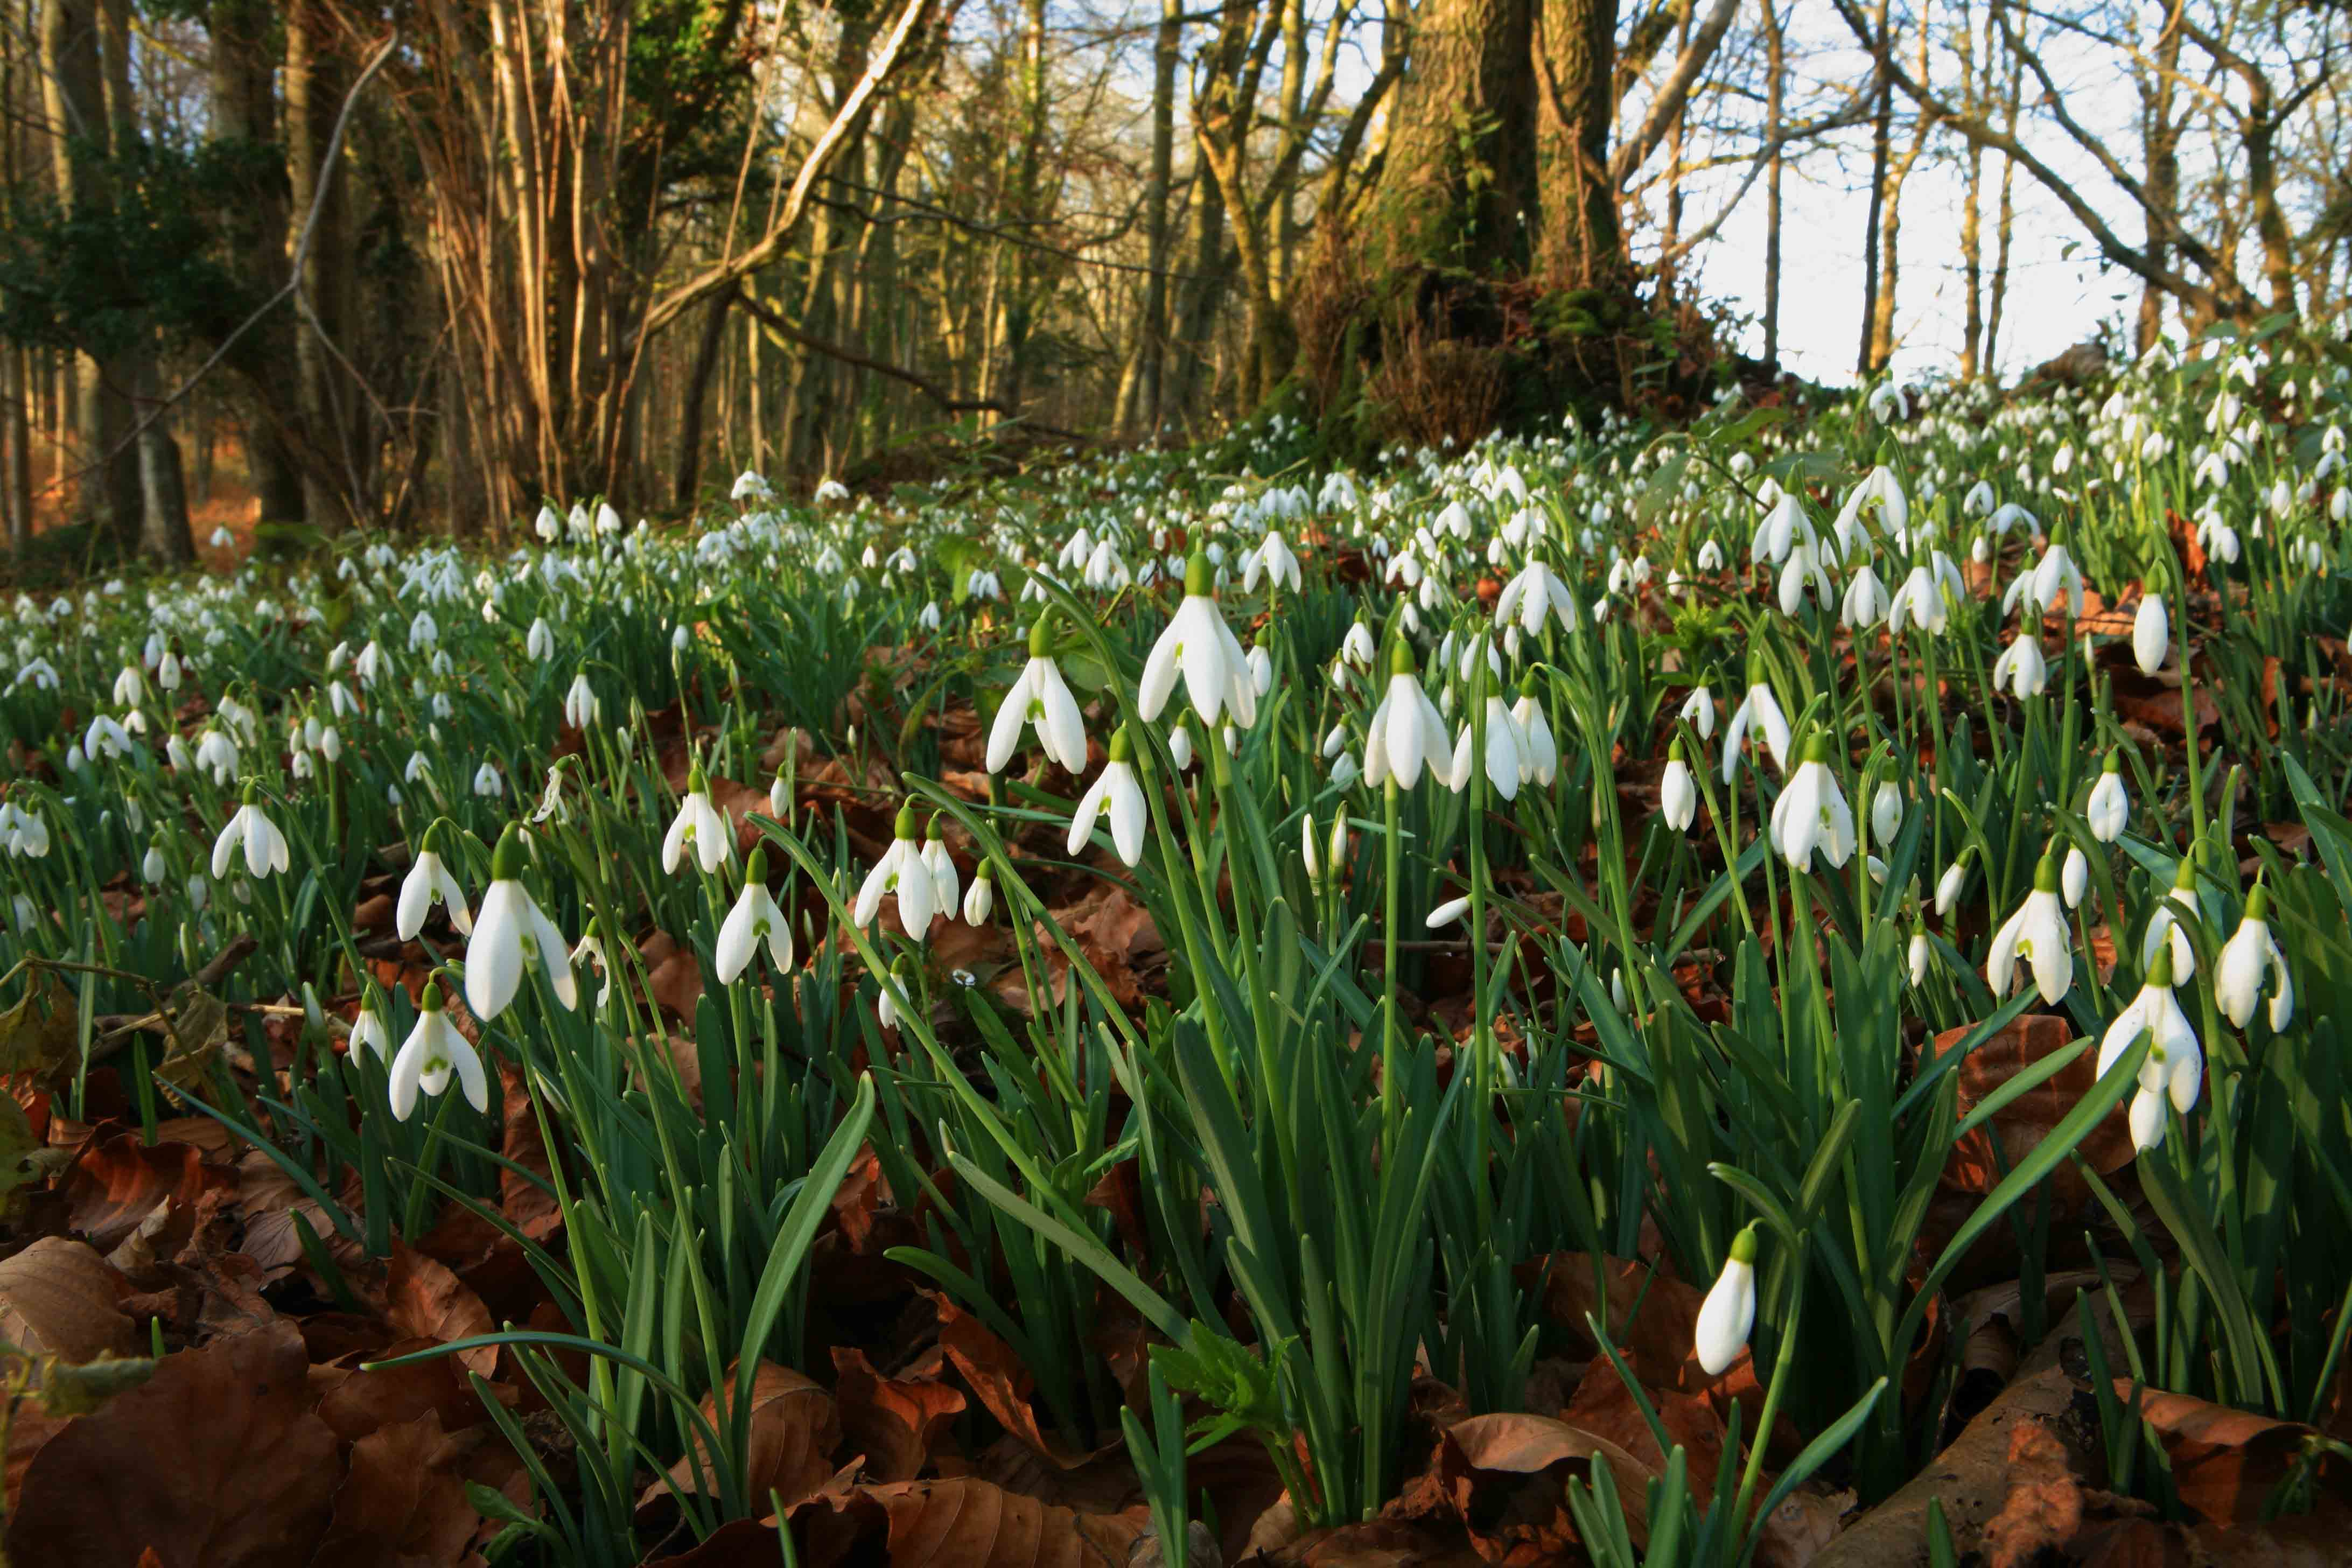 Snowdrop flowers in a forest